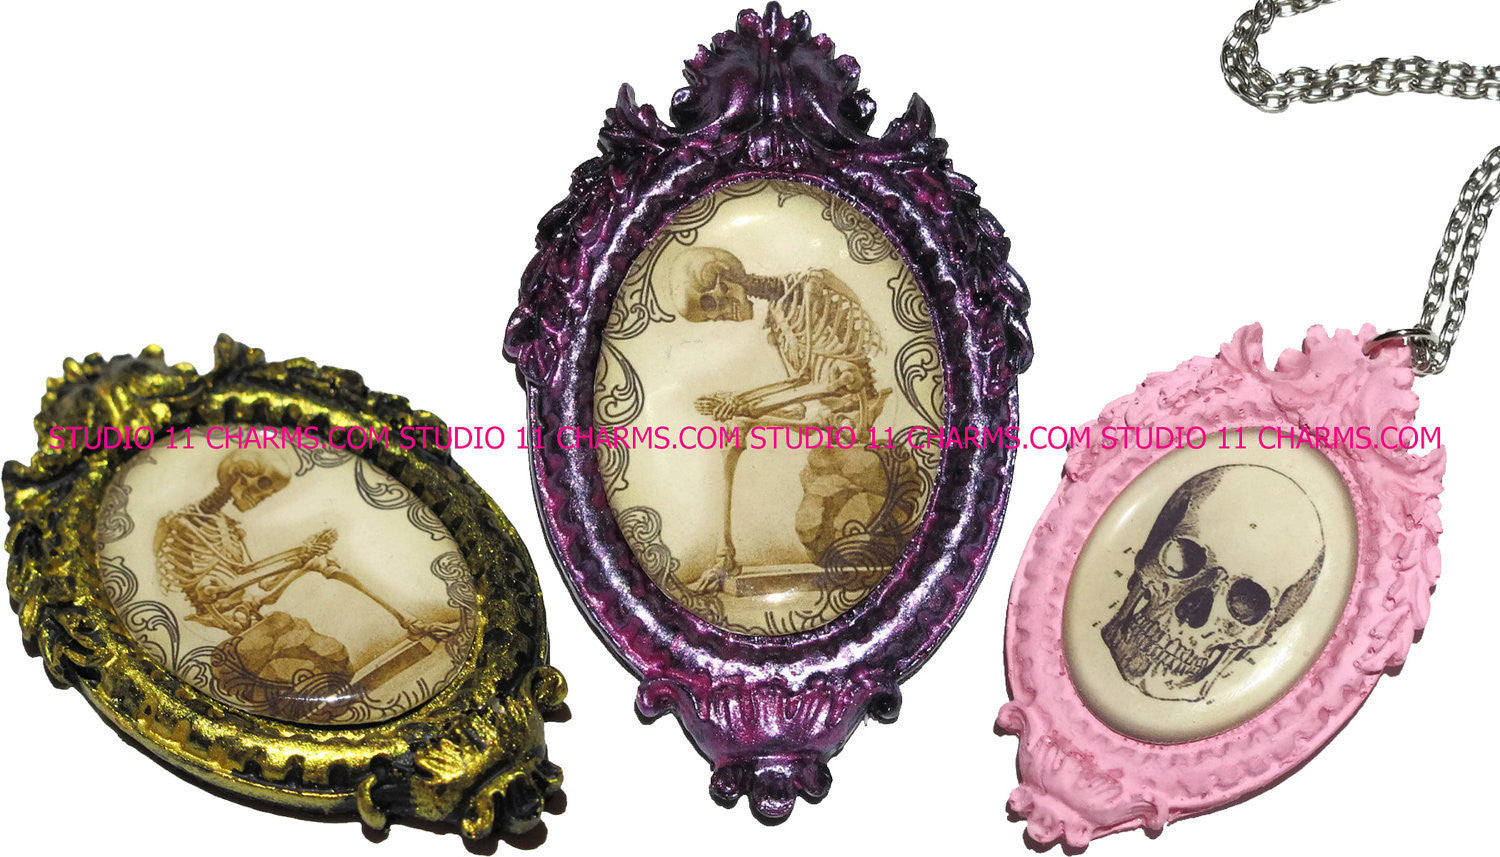 40x30, 18x25, 13X18 Resin Cameo LOW DOME Cabochon. Alice in Wonderland 42h